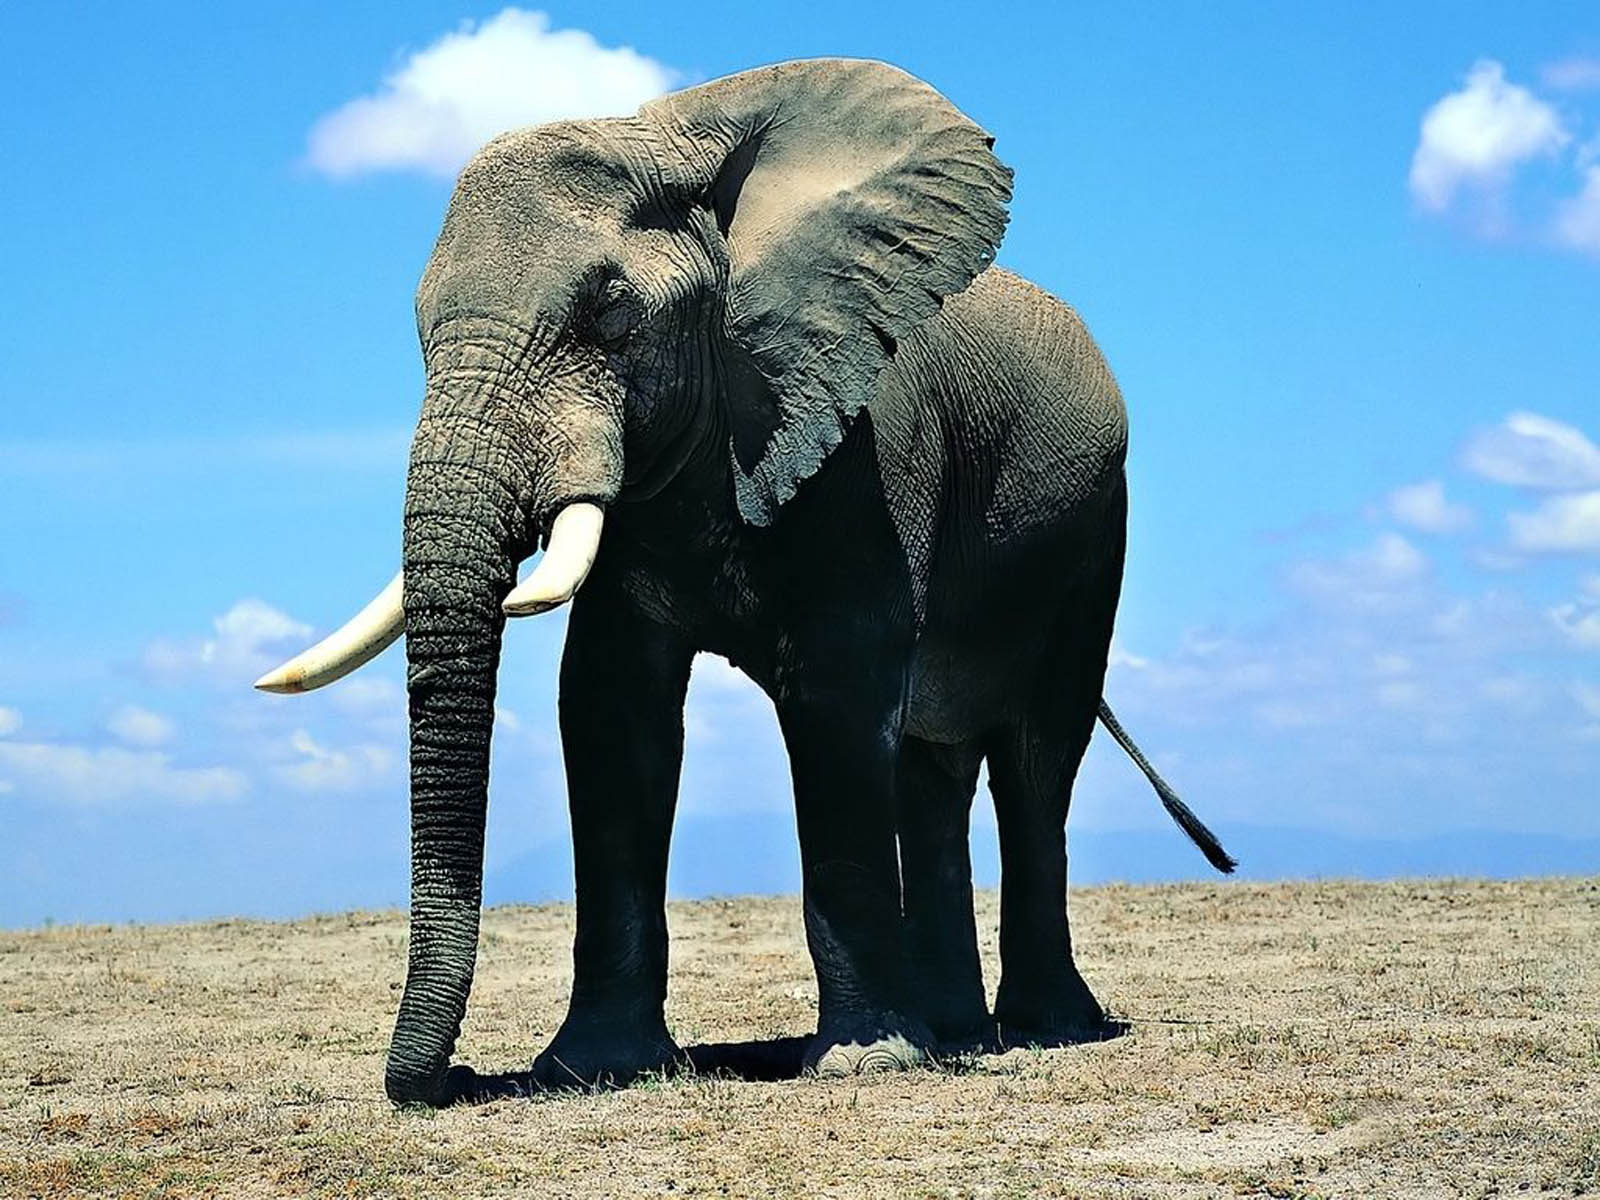 Tag: Elephant Wallpapers, Images, Photos, Pictures and Backgrounds for